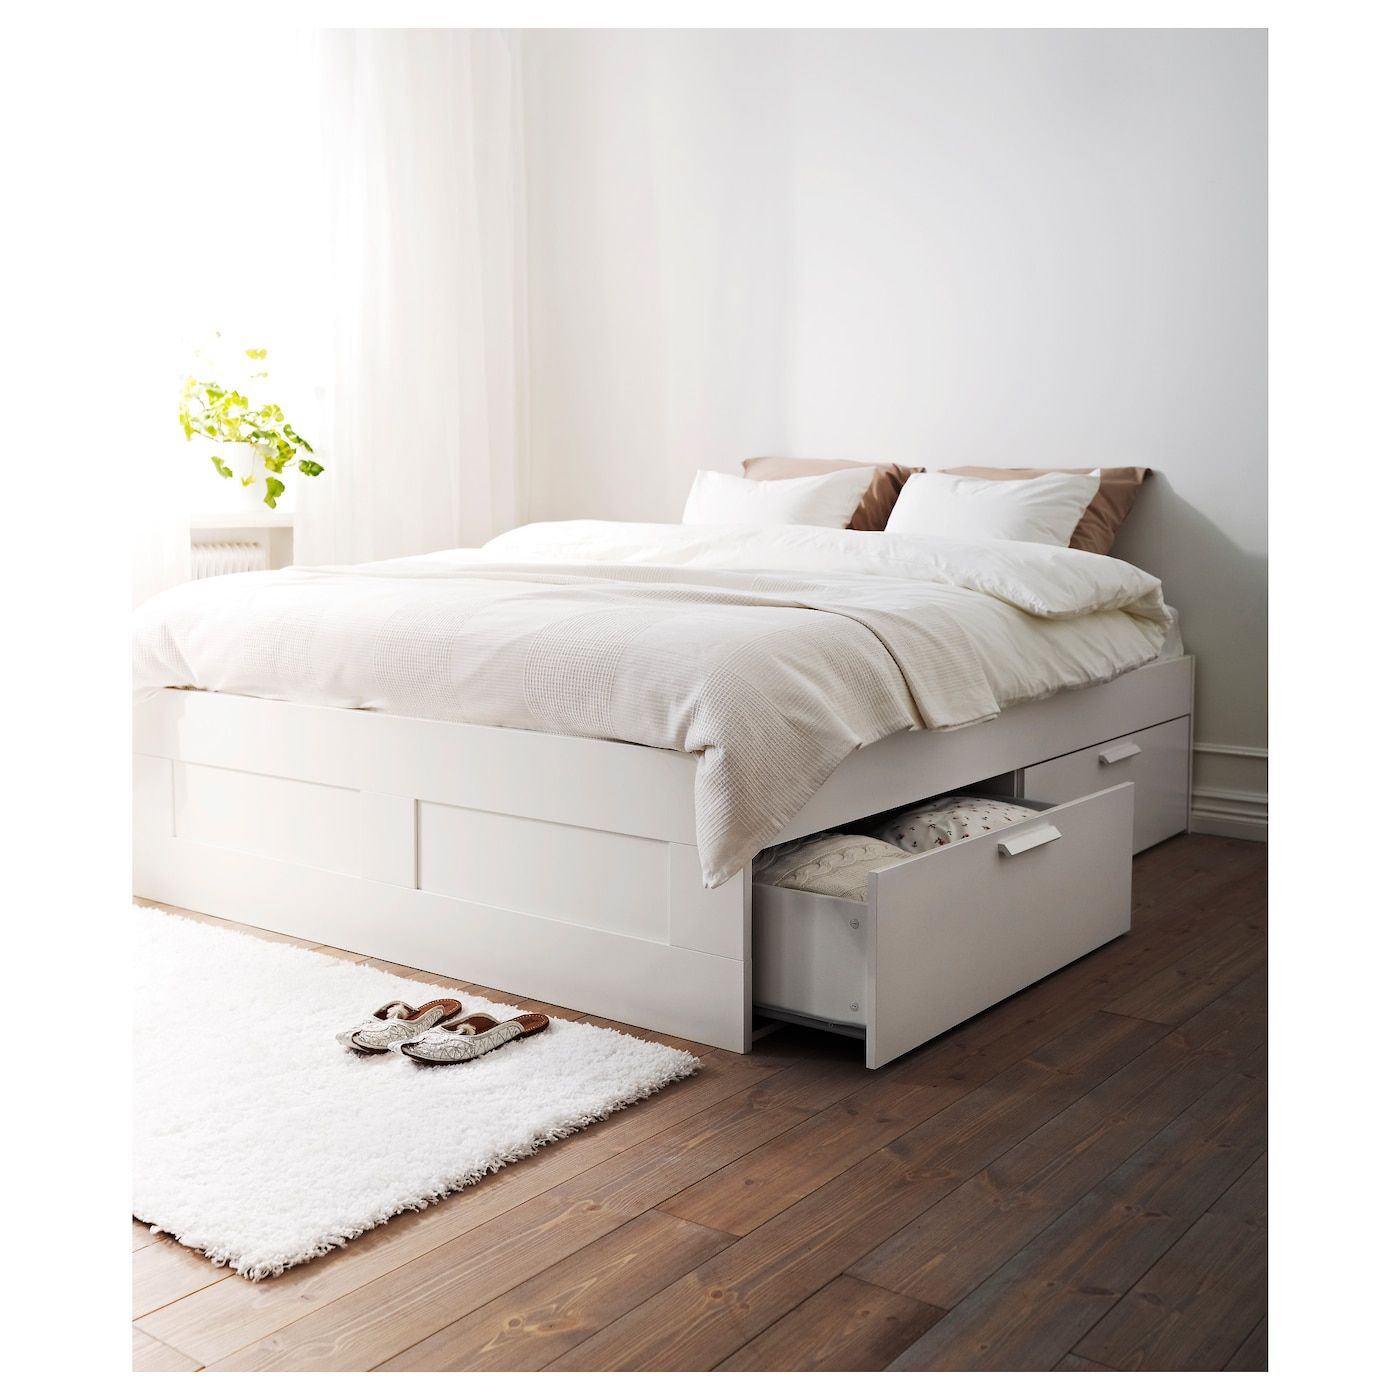 Ikea Brimnes Bed Frame With Storage Bed Frame With Storage